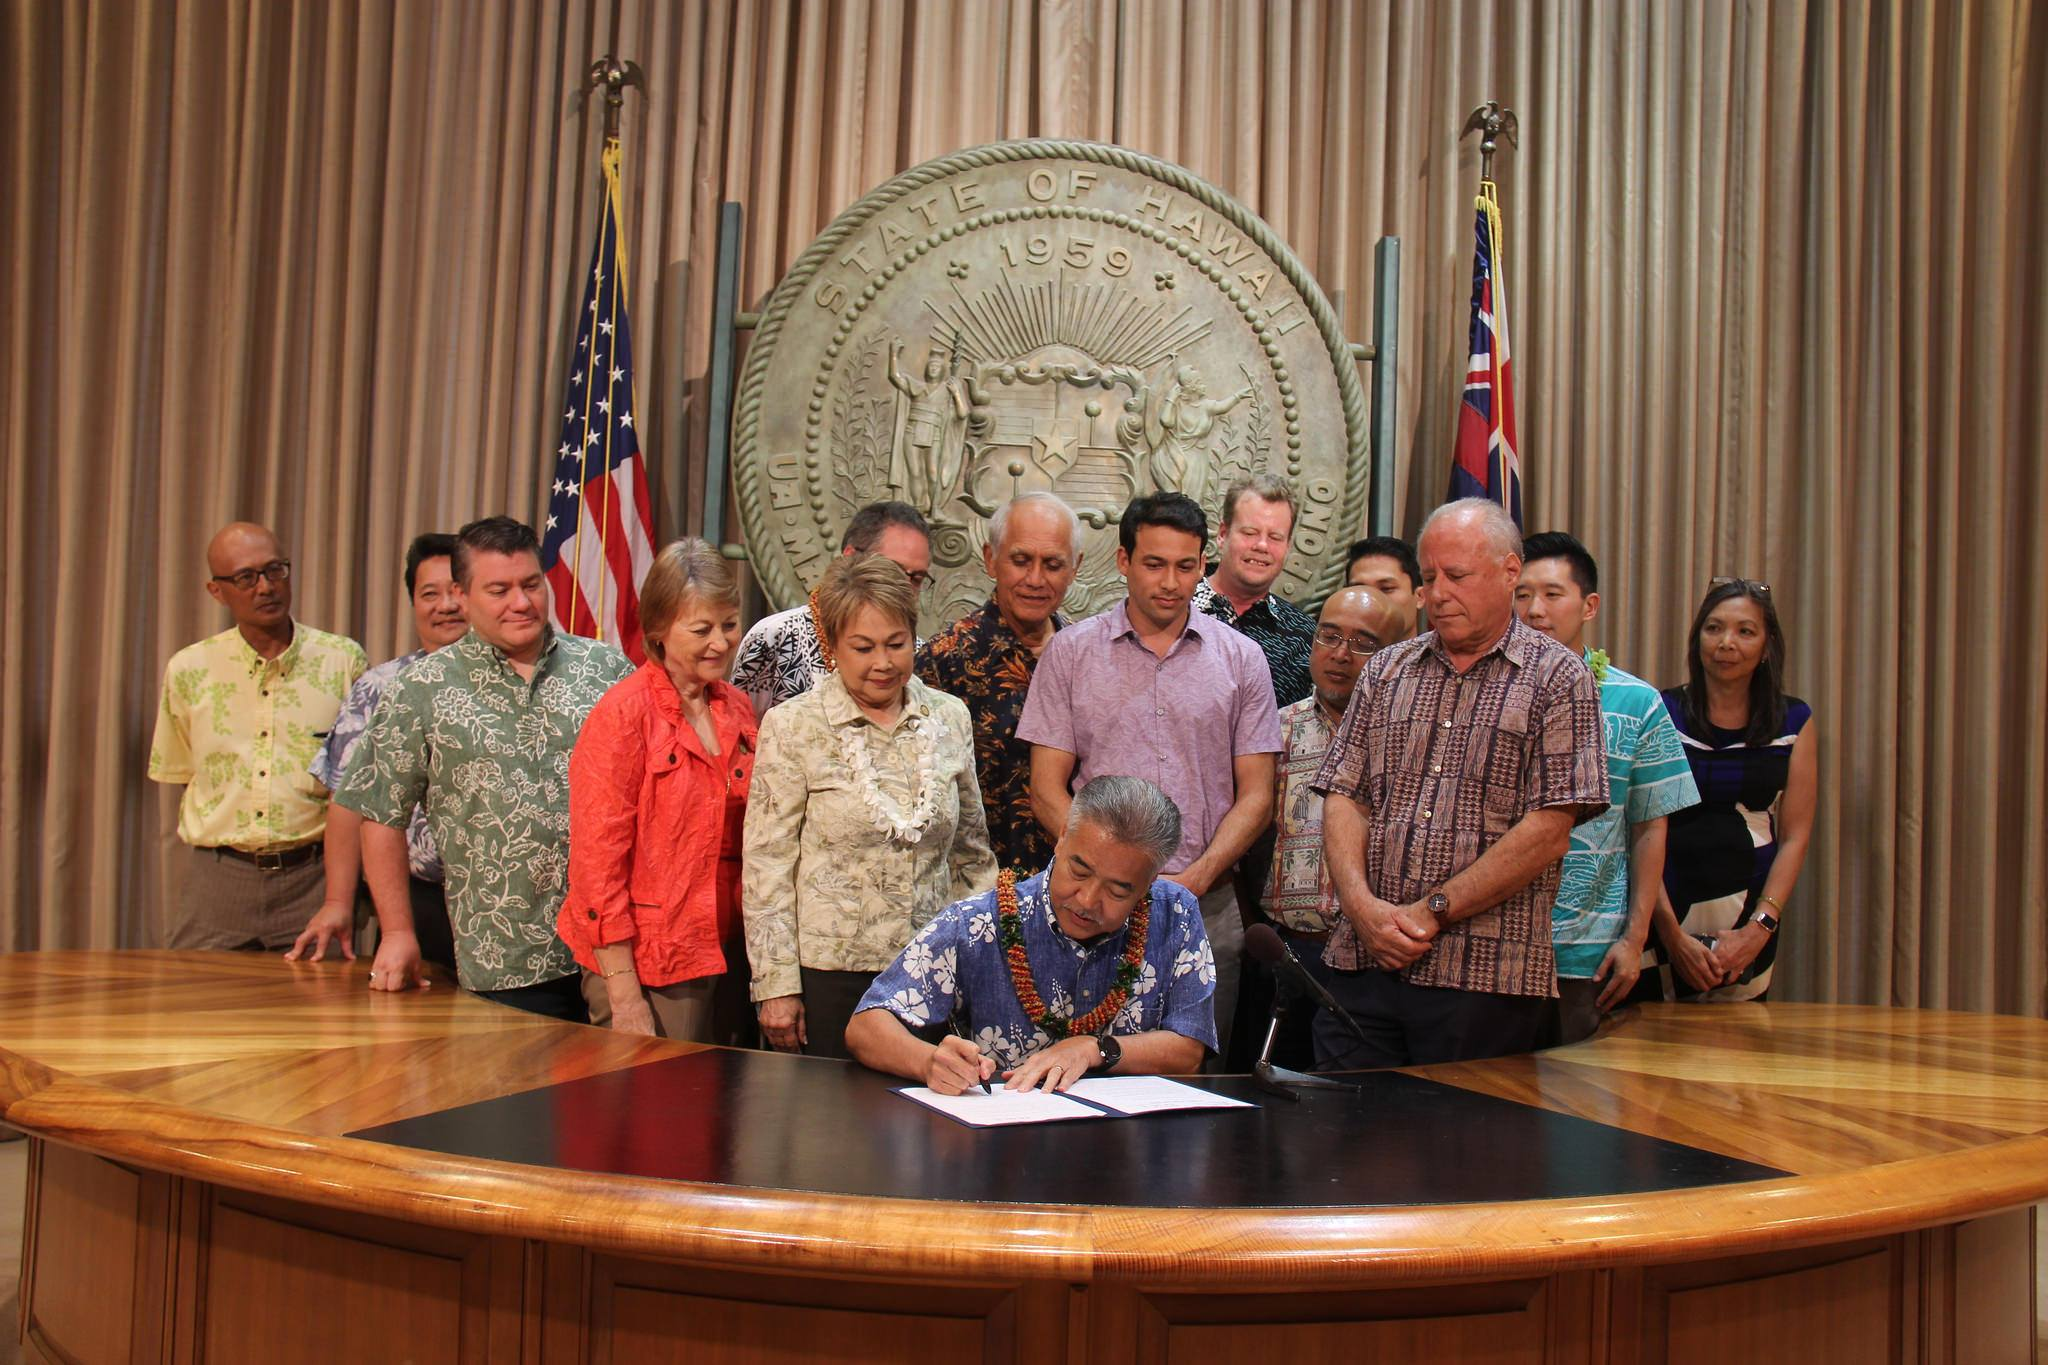 Governor David Ige signed SB3095 into law as Act 45 which creates pesticide free buffer zones around schools. (June 13, 2018)